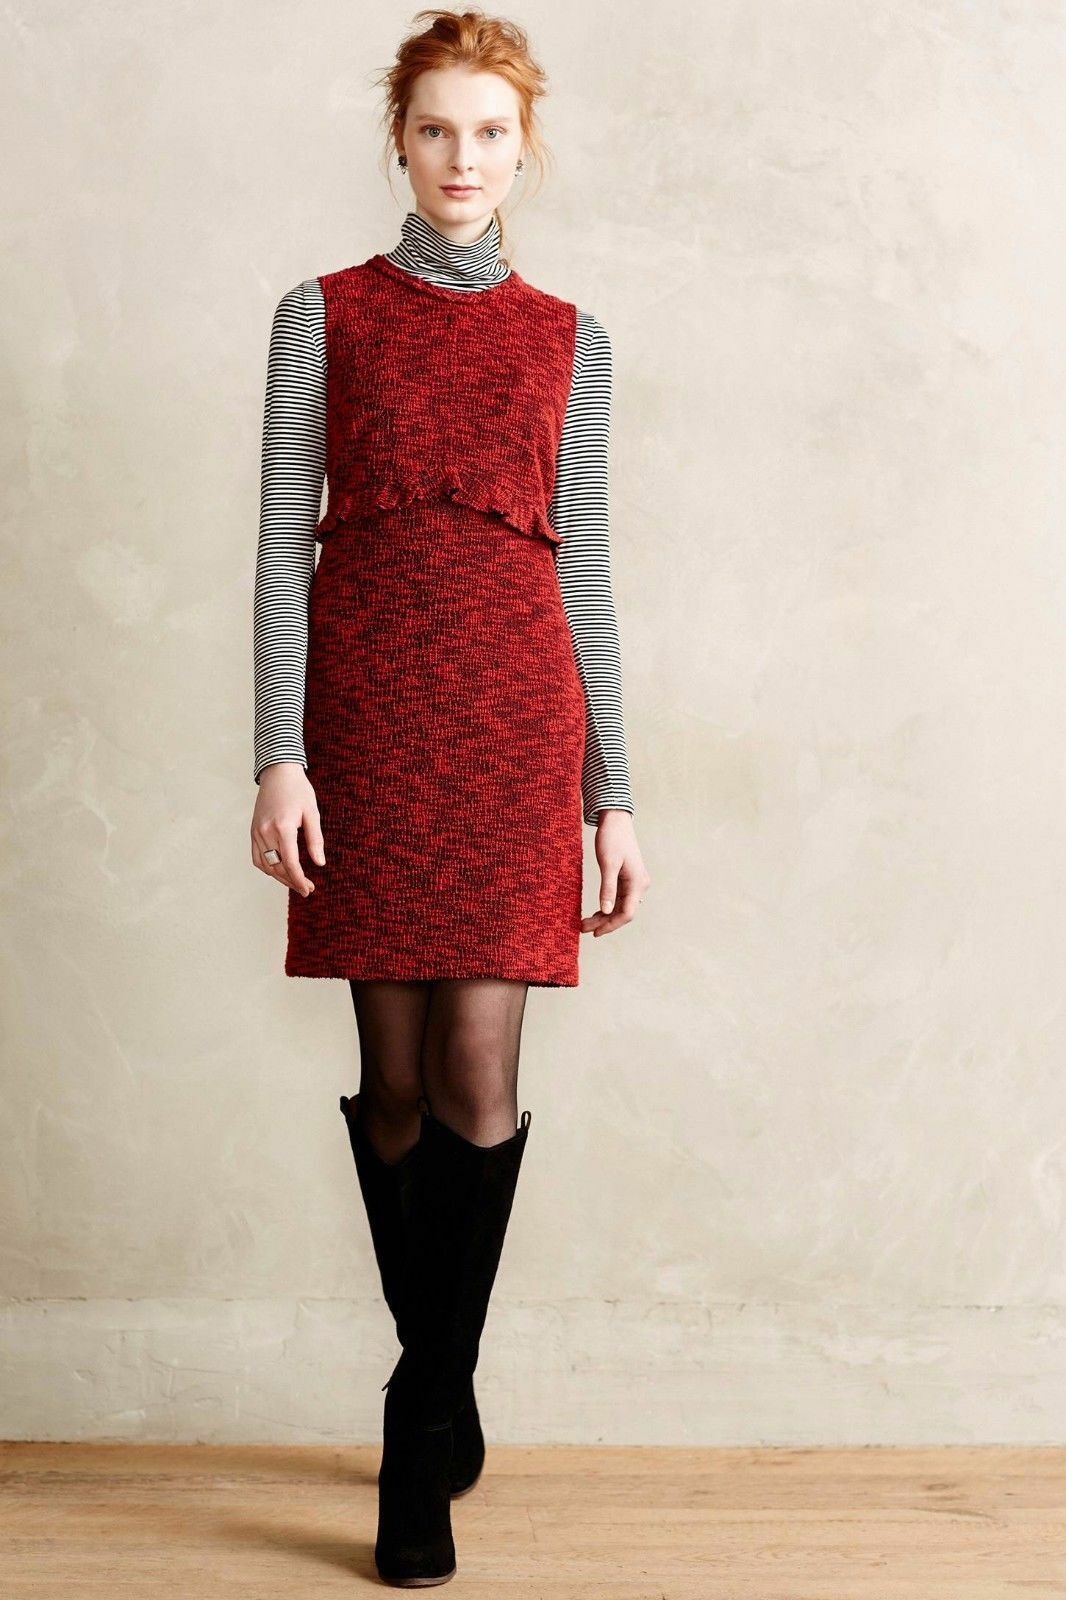 NIP Anthropologie Charlotte Tweed Sheath by Hi There from Karen Walker, Größe 14